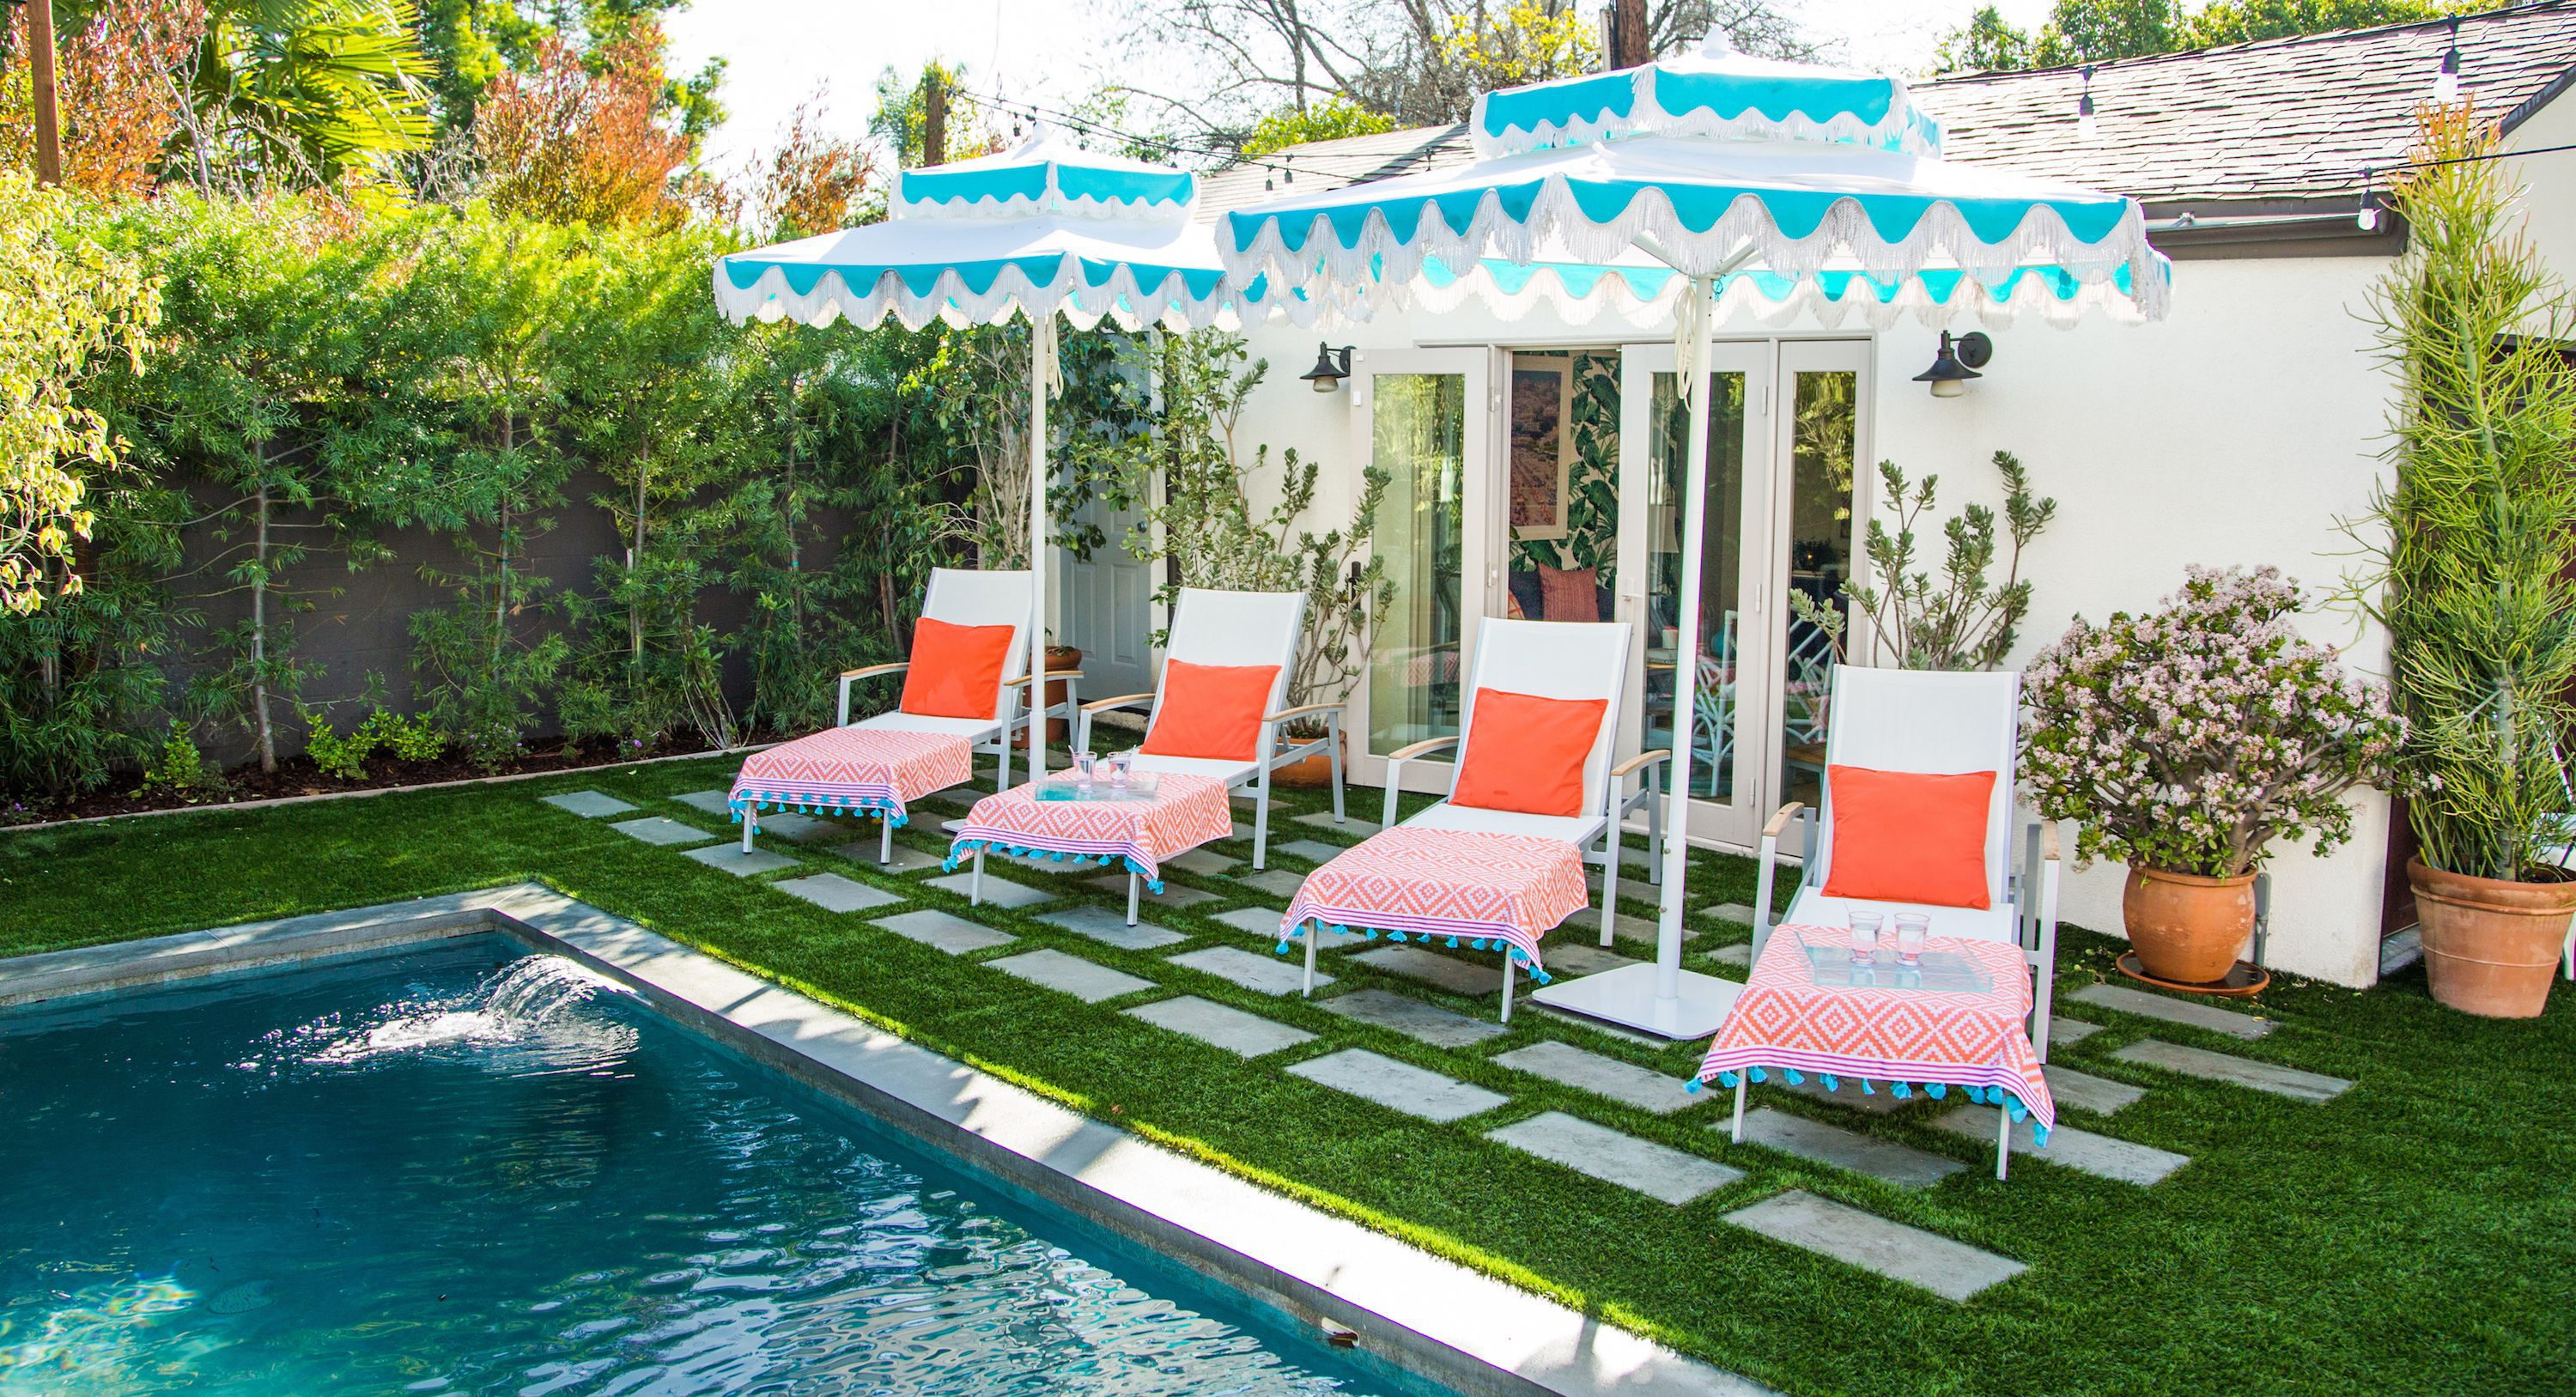 30 Best Patio And Porch Design Ideas Decorating Your Outdoor Space with regard to 10 Genius Concepts of How to Improve Colorful Backyard Ideas